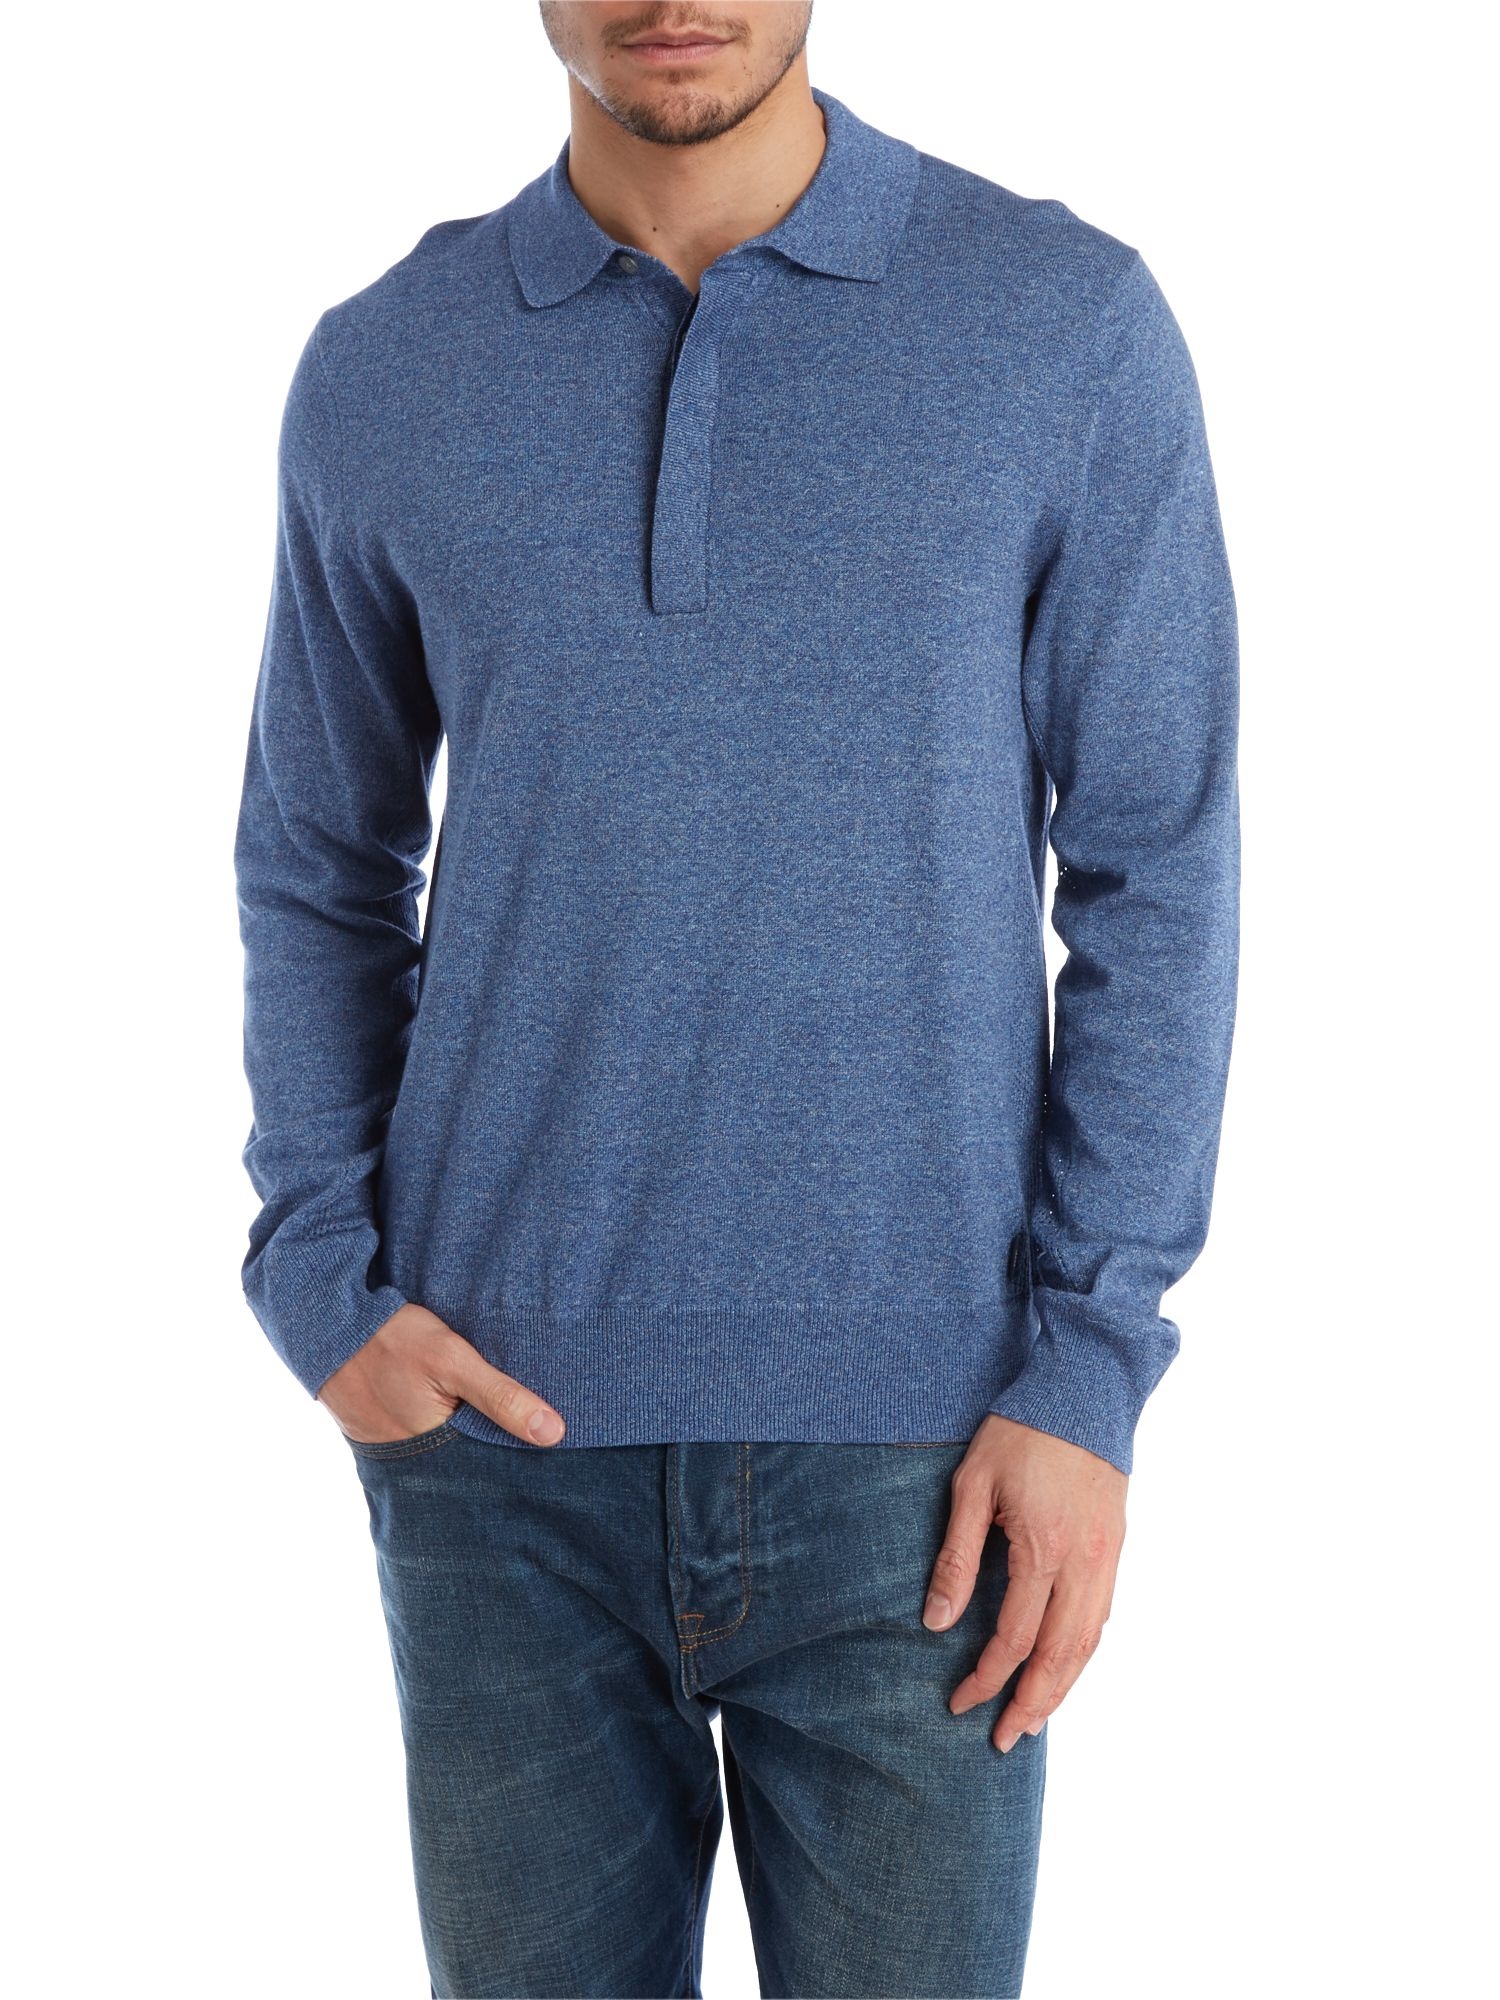 Marl polo knit